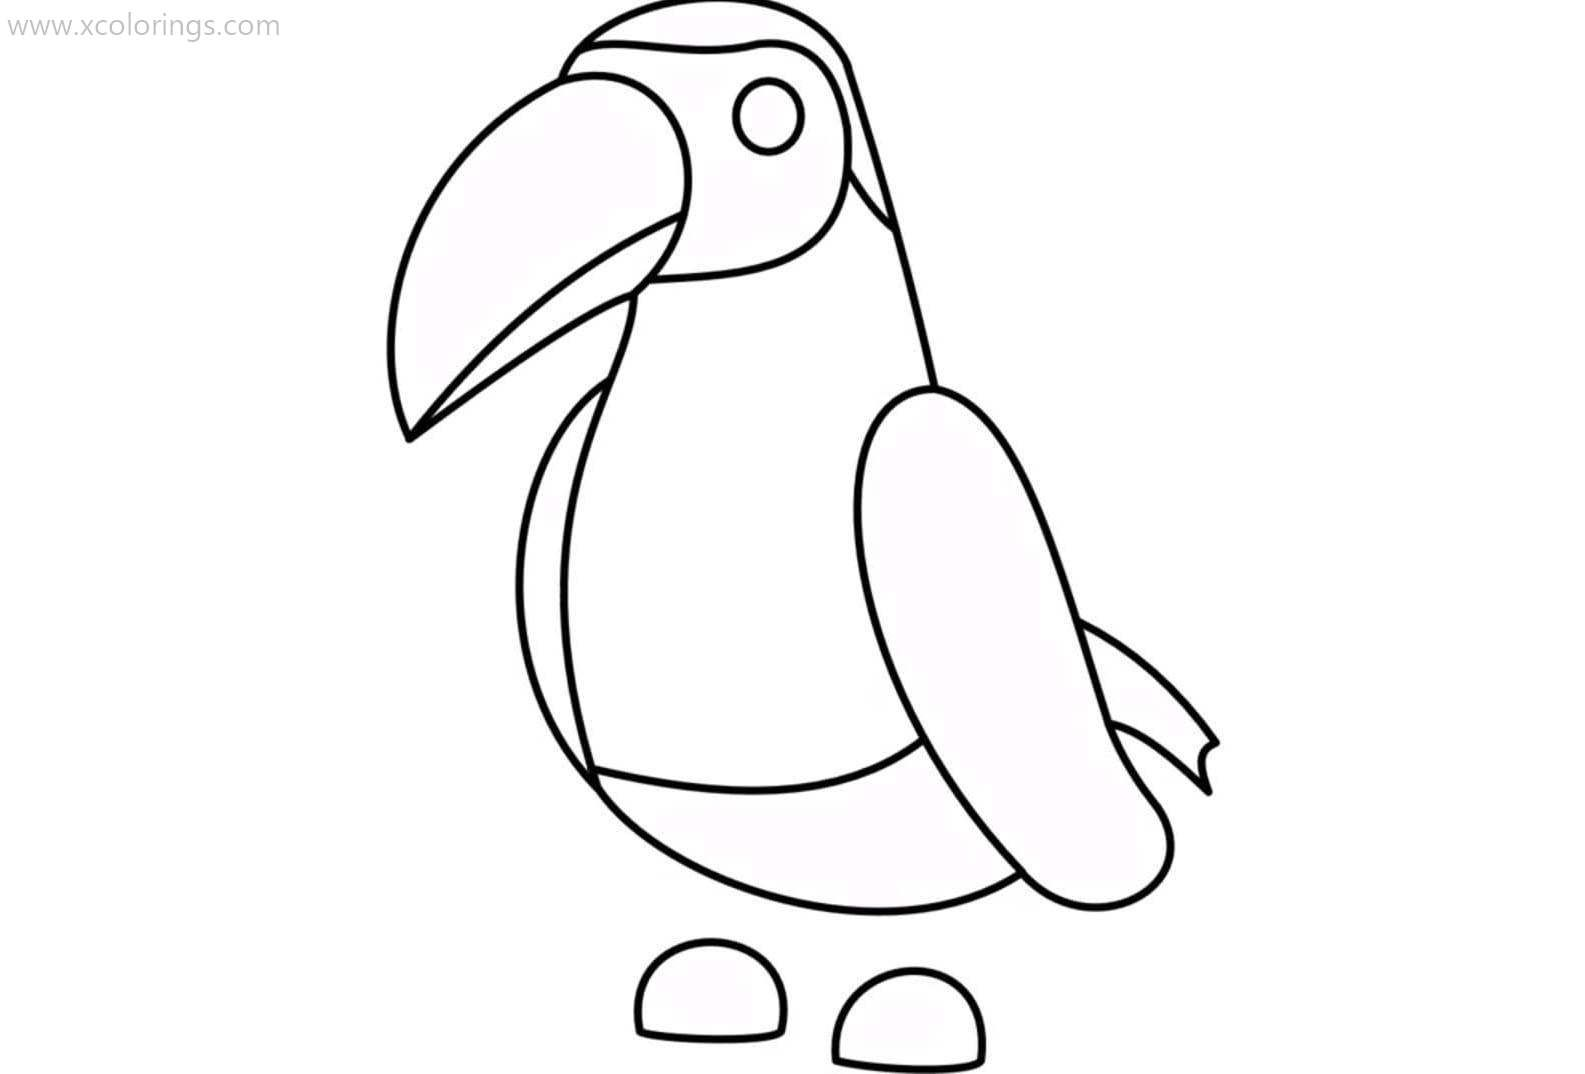 Roblox Adopt Me Coloring Pages Toucan Pets Drawing Coloring Pages Kawaii Drawings